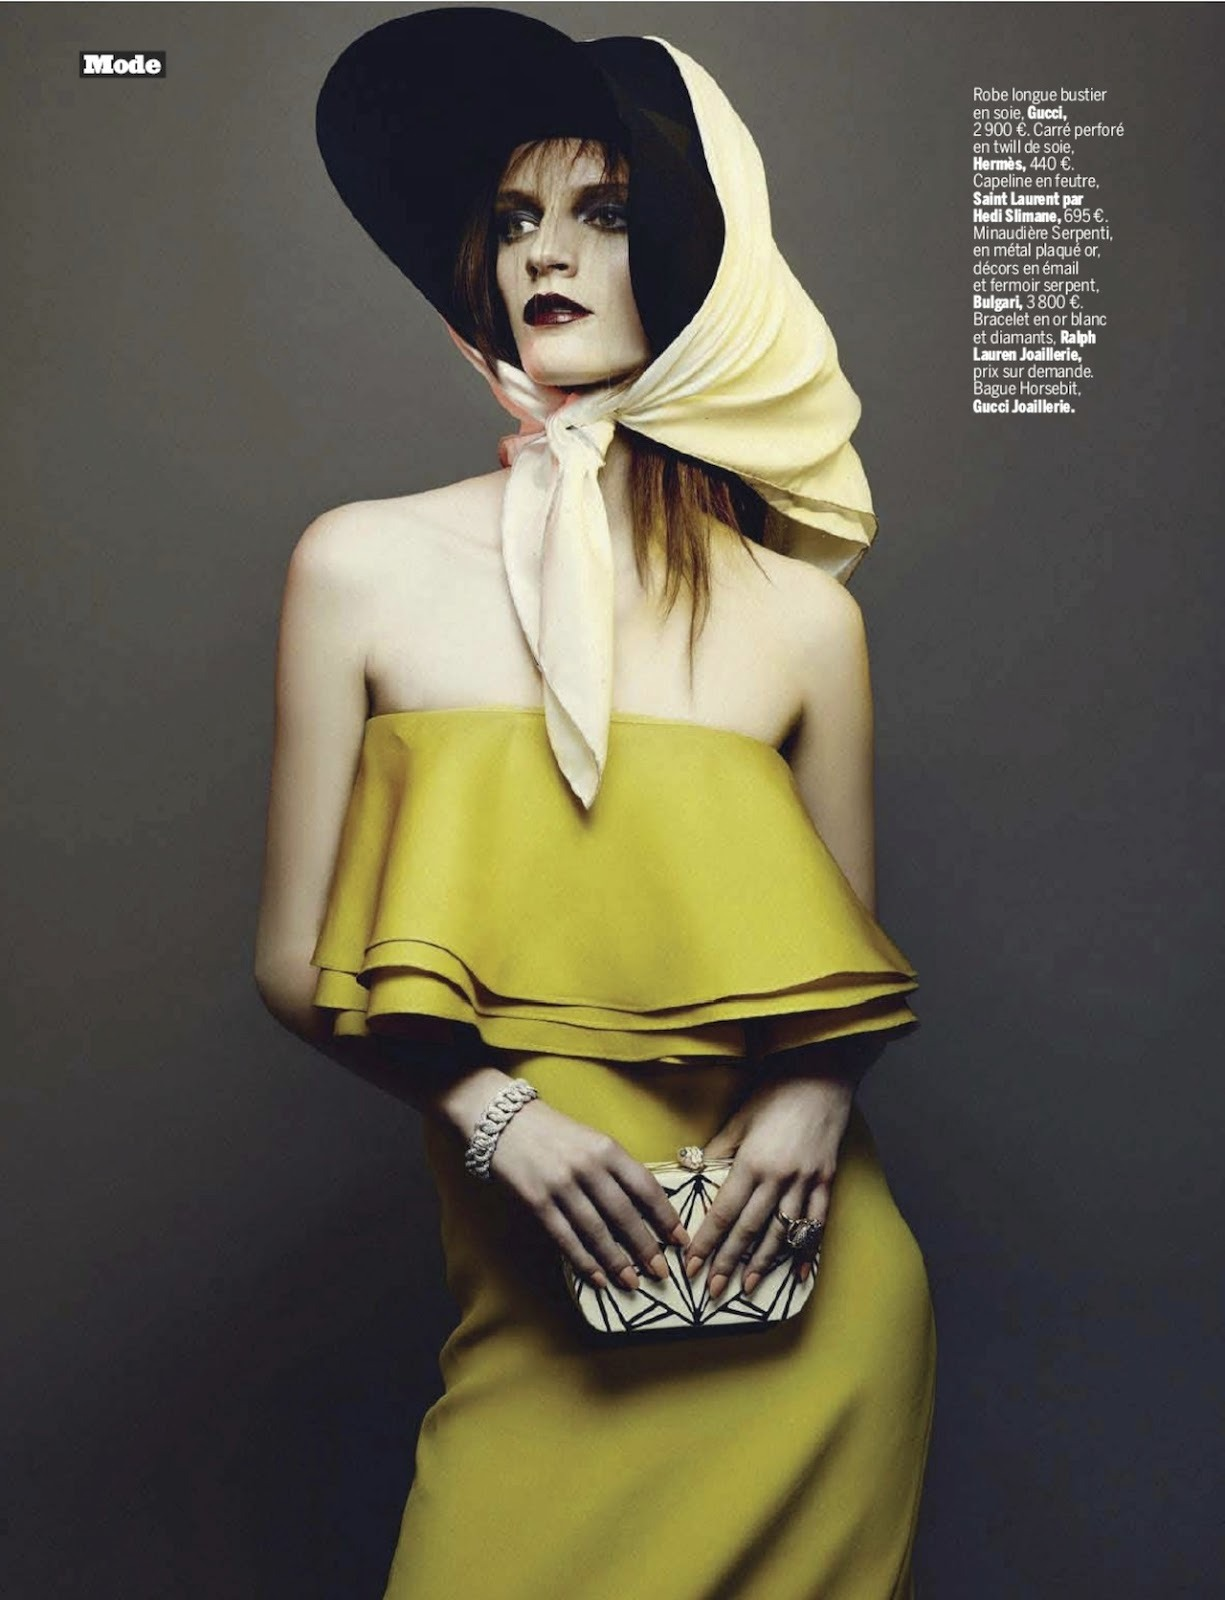 belle intrepide: laura kampman by dancian for l'express styles 8th may 2013. from visual optimism